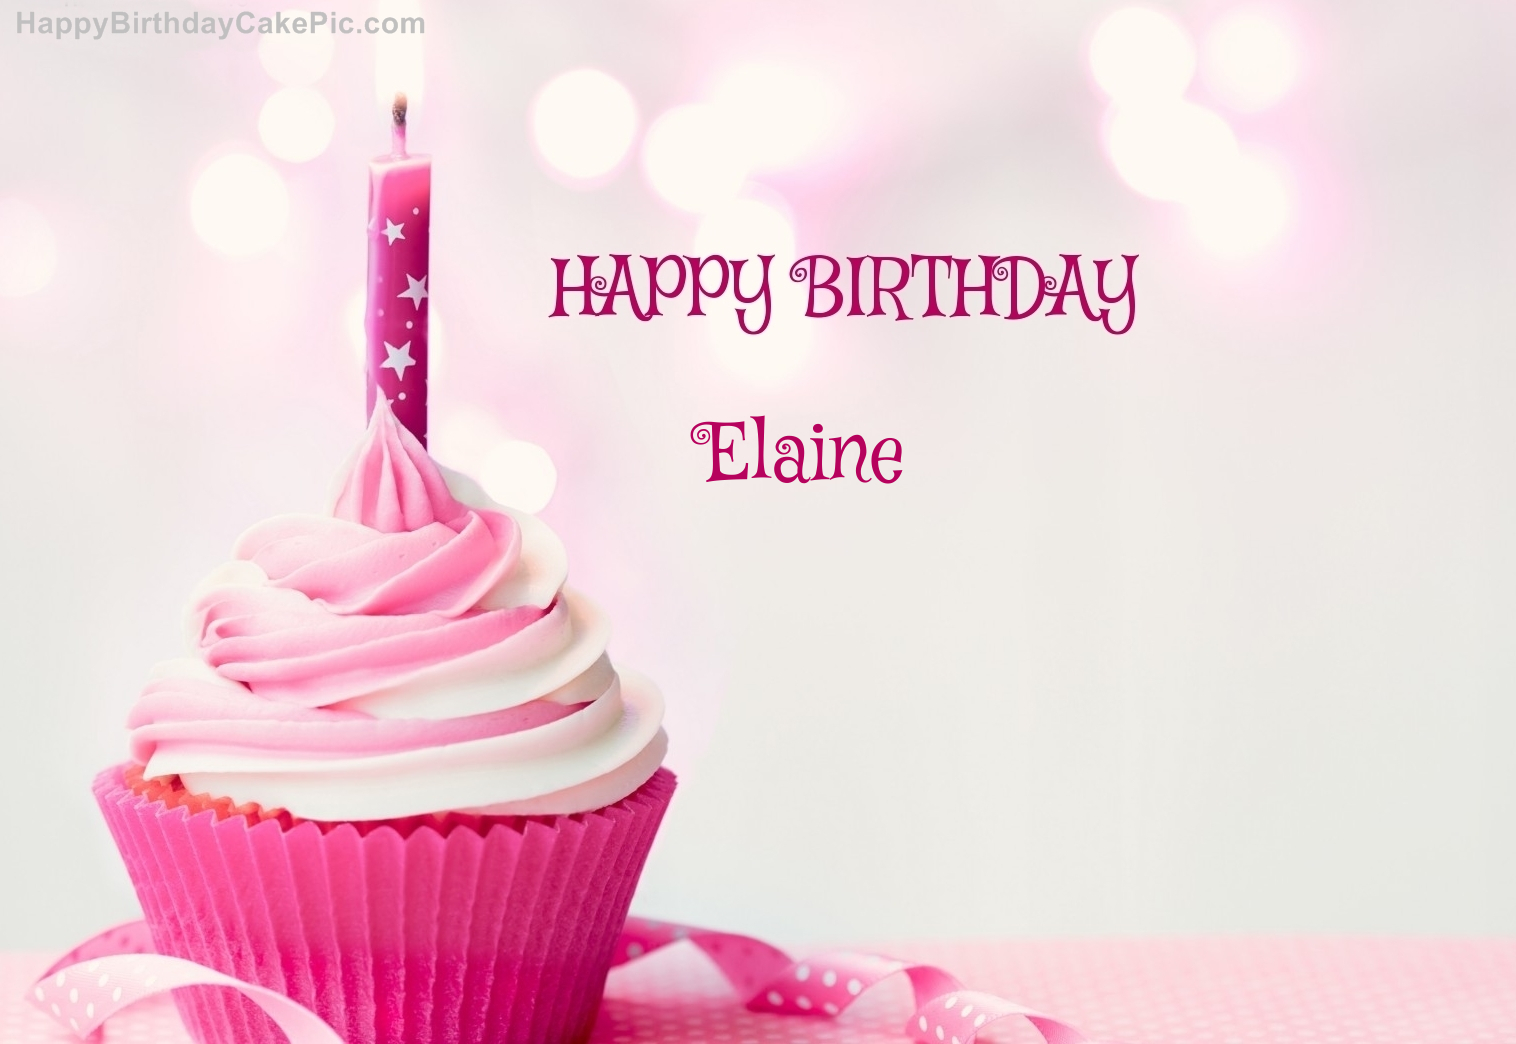 Happy Birthday Cupcake Candle Pink Cake For Elaine